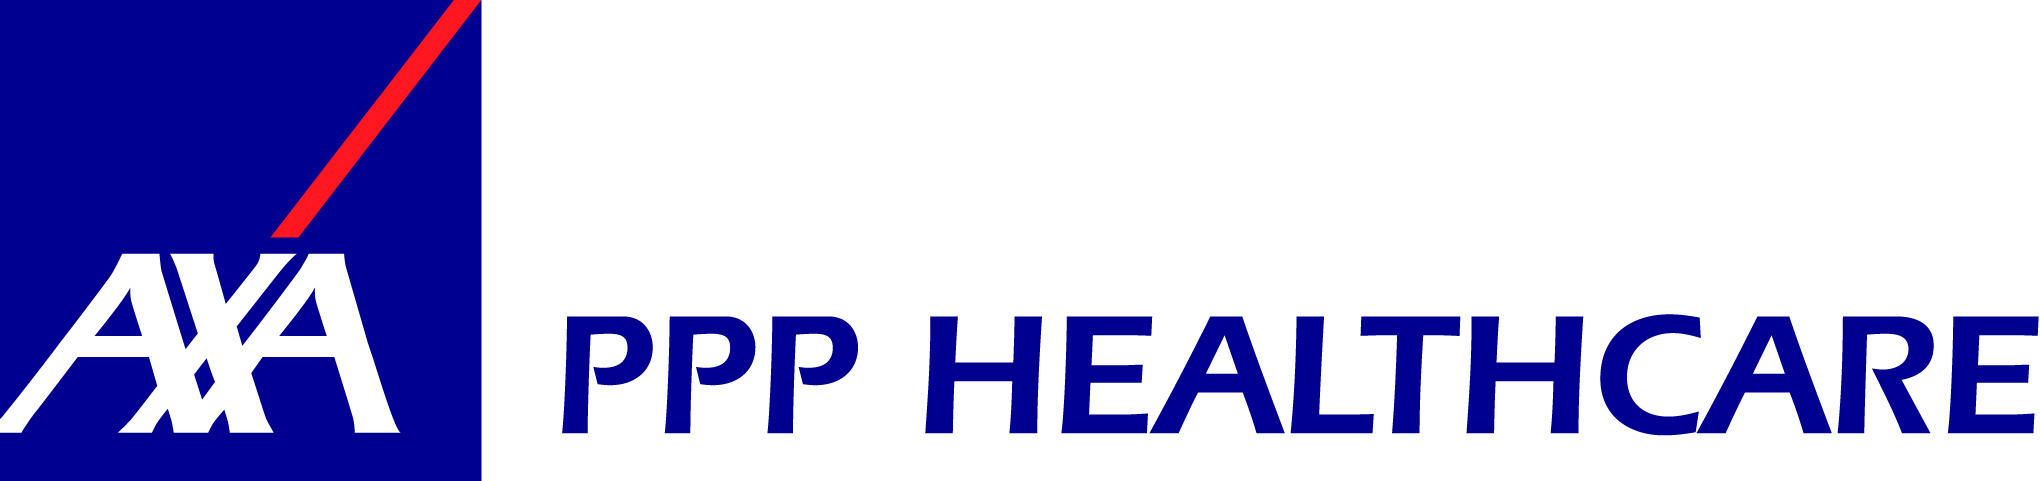 AXA_PPP_healthcare_solid_rgb